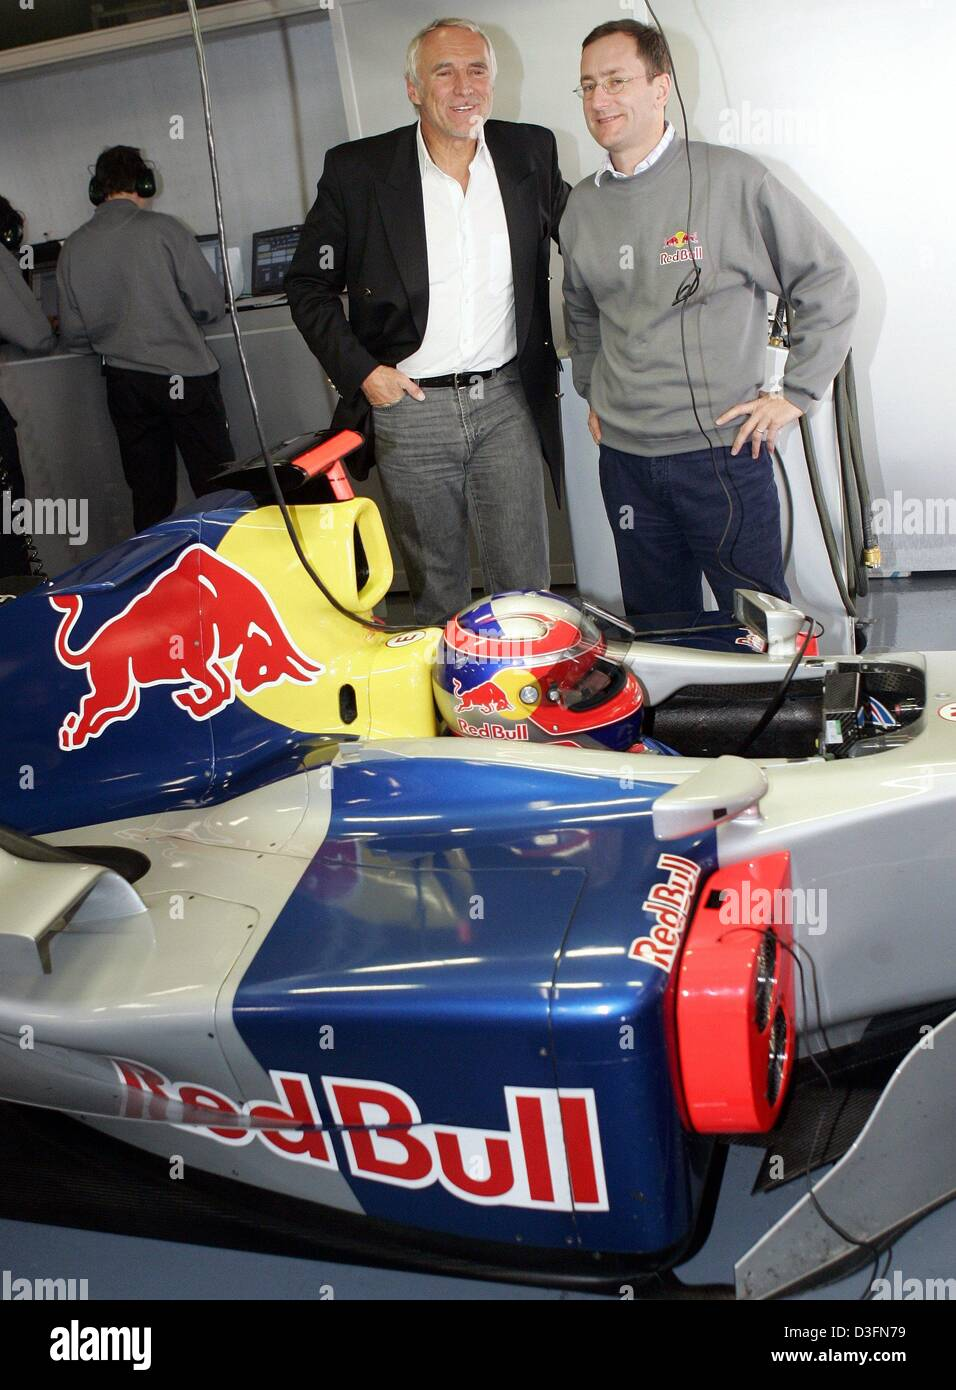 (dpa) - Red Bull owner Dietrich Mateschitz (back L) and Red Bull racing team head Tony Purnell (back R) smile as - Stock Image